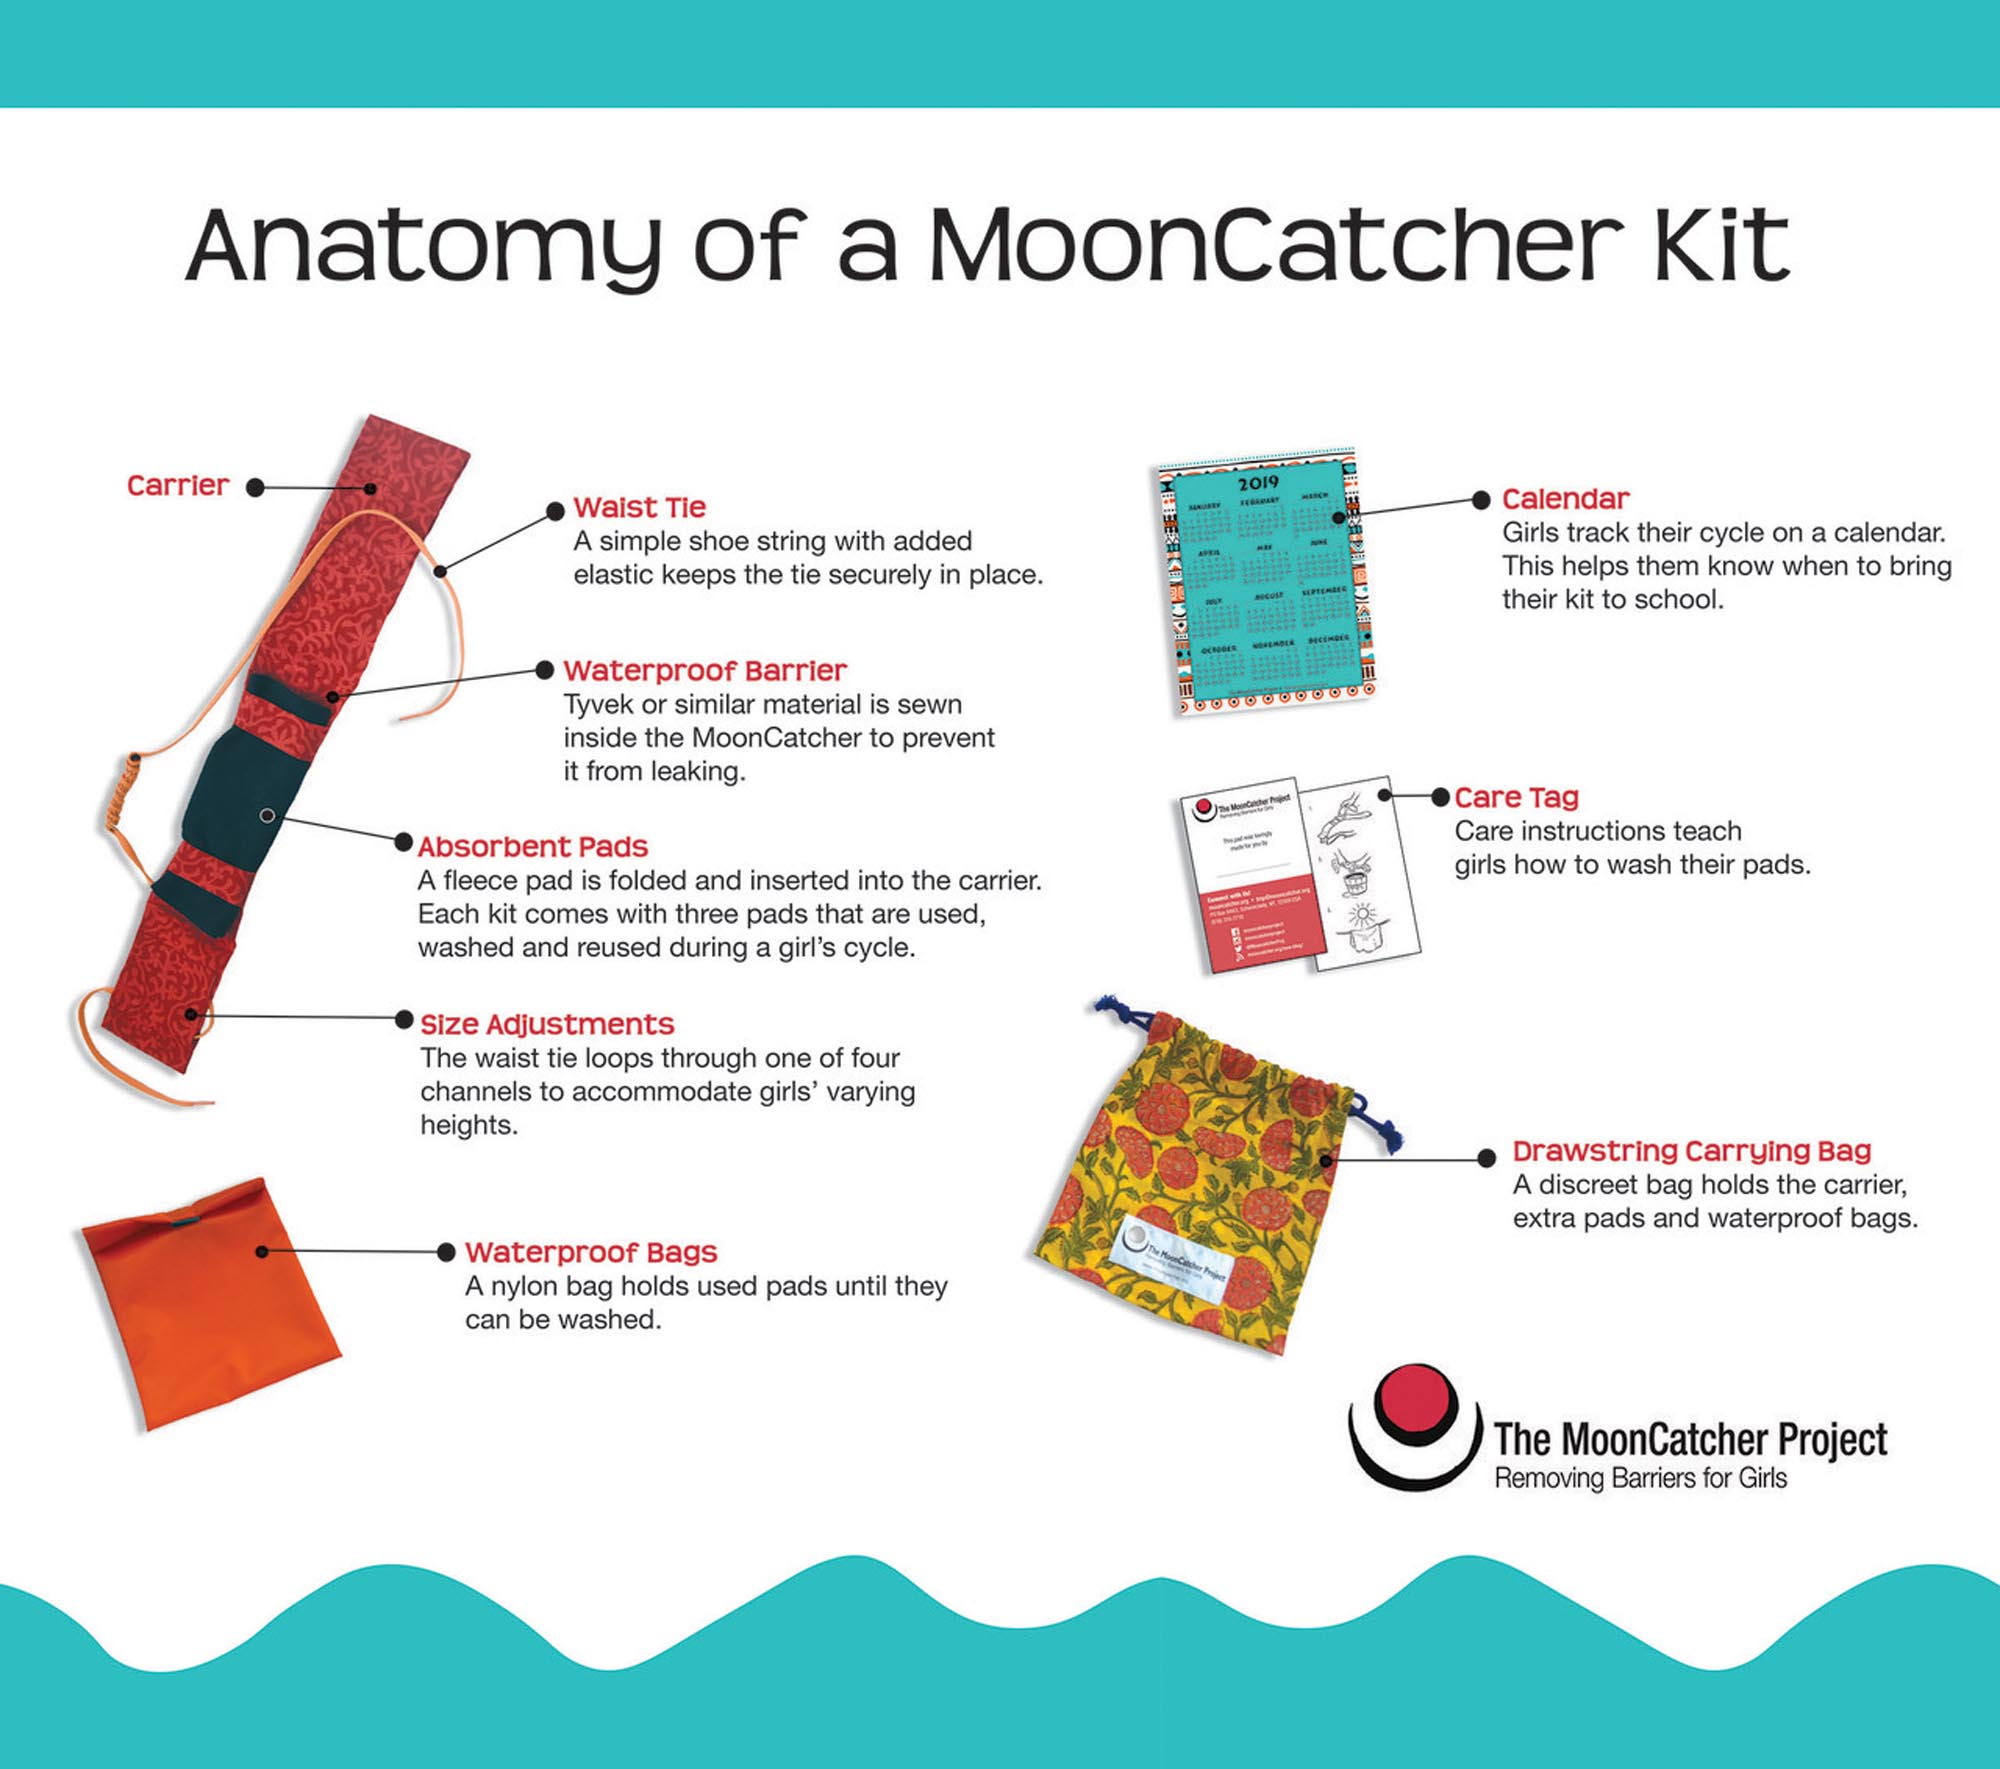 graphic menstrual management kit directions with photos and text